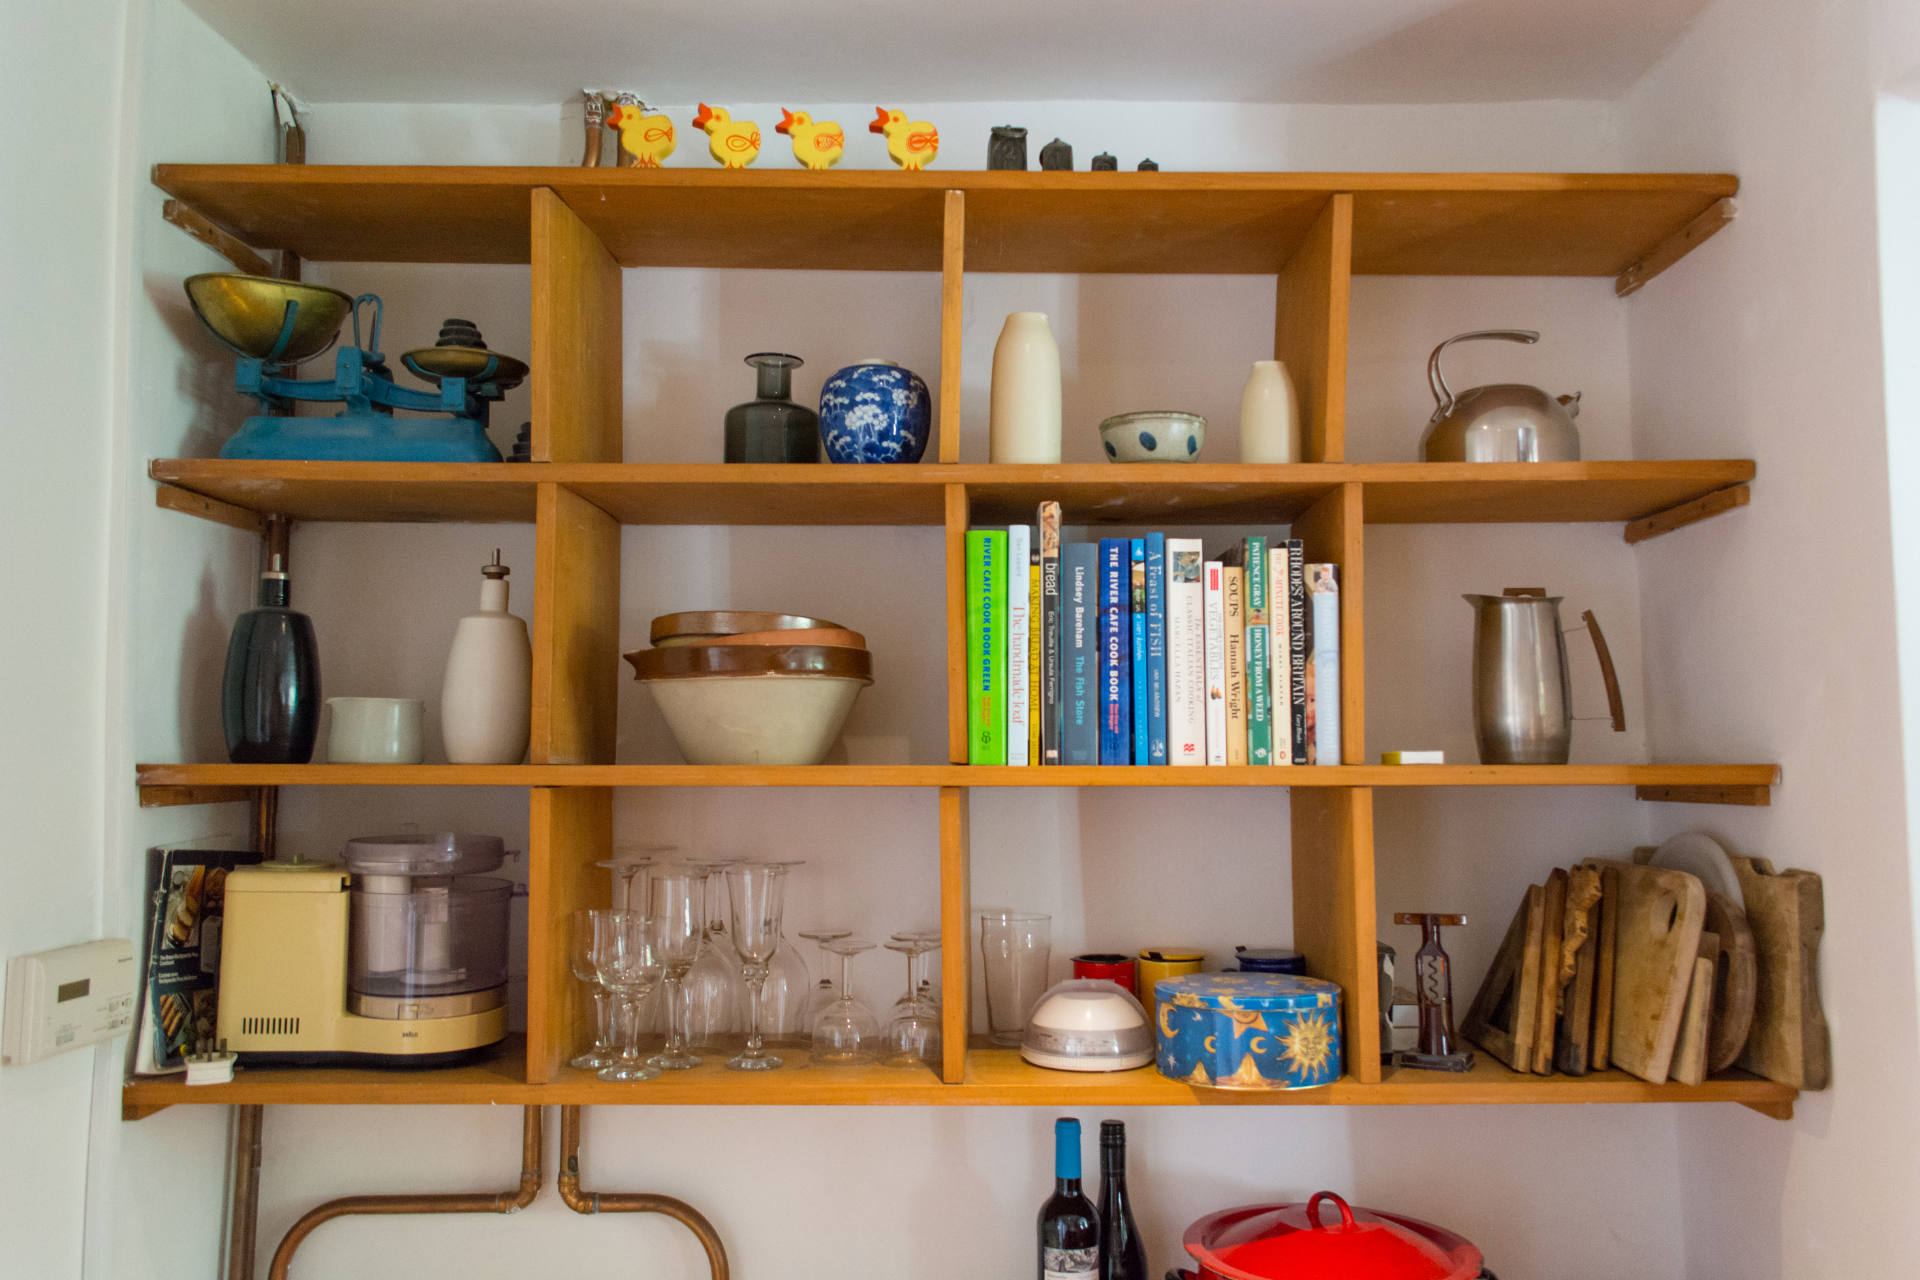 storage shelving for ornaments and cook books.